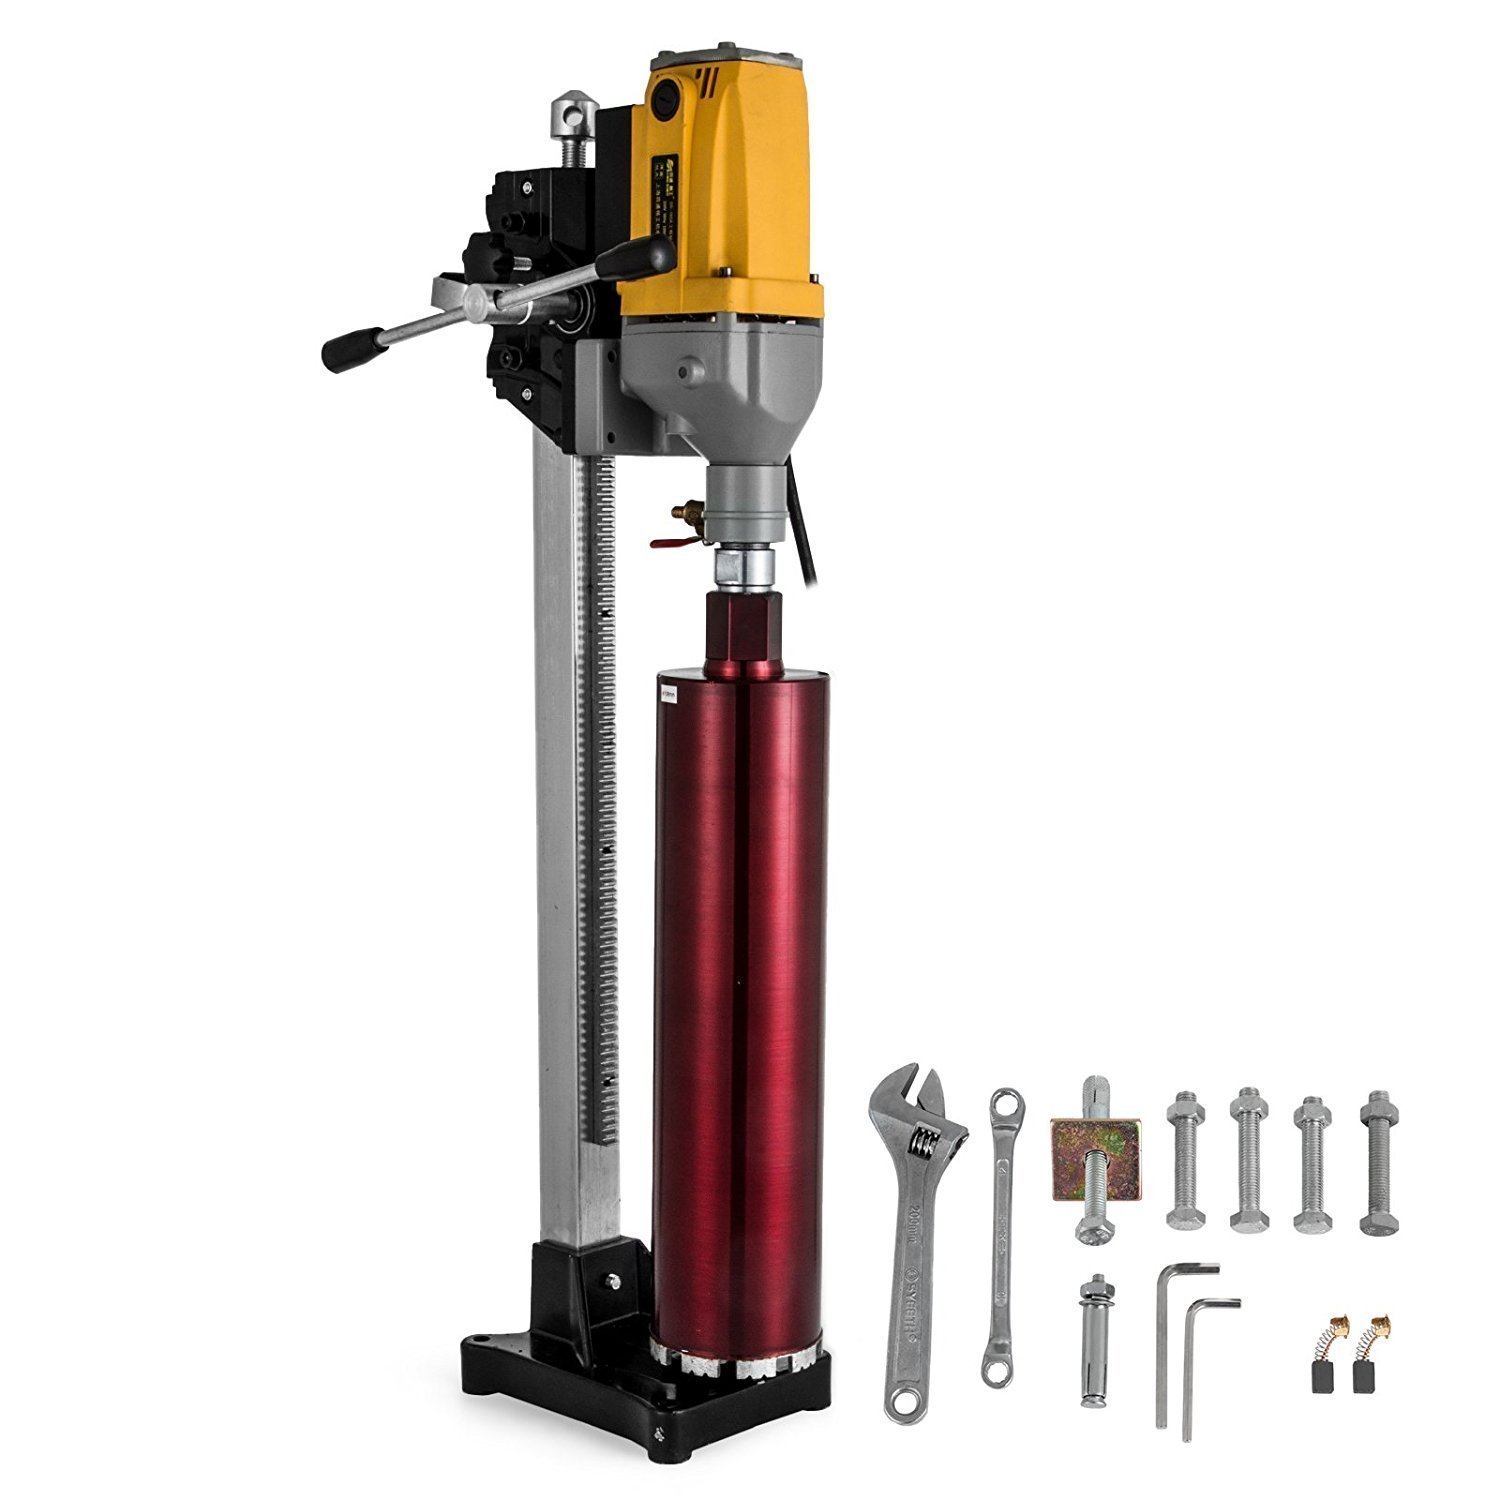 """Happybuy Diamond Drilling Machine 6"""" 160MM Drilling Capacity 110V Diamond Core Drill Rig Diamond Core Drilling Machine with Drill Bit for Wet Dry Concrete Brick Block (160MM) (6IN)"""